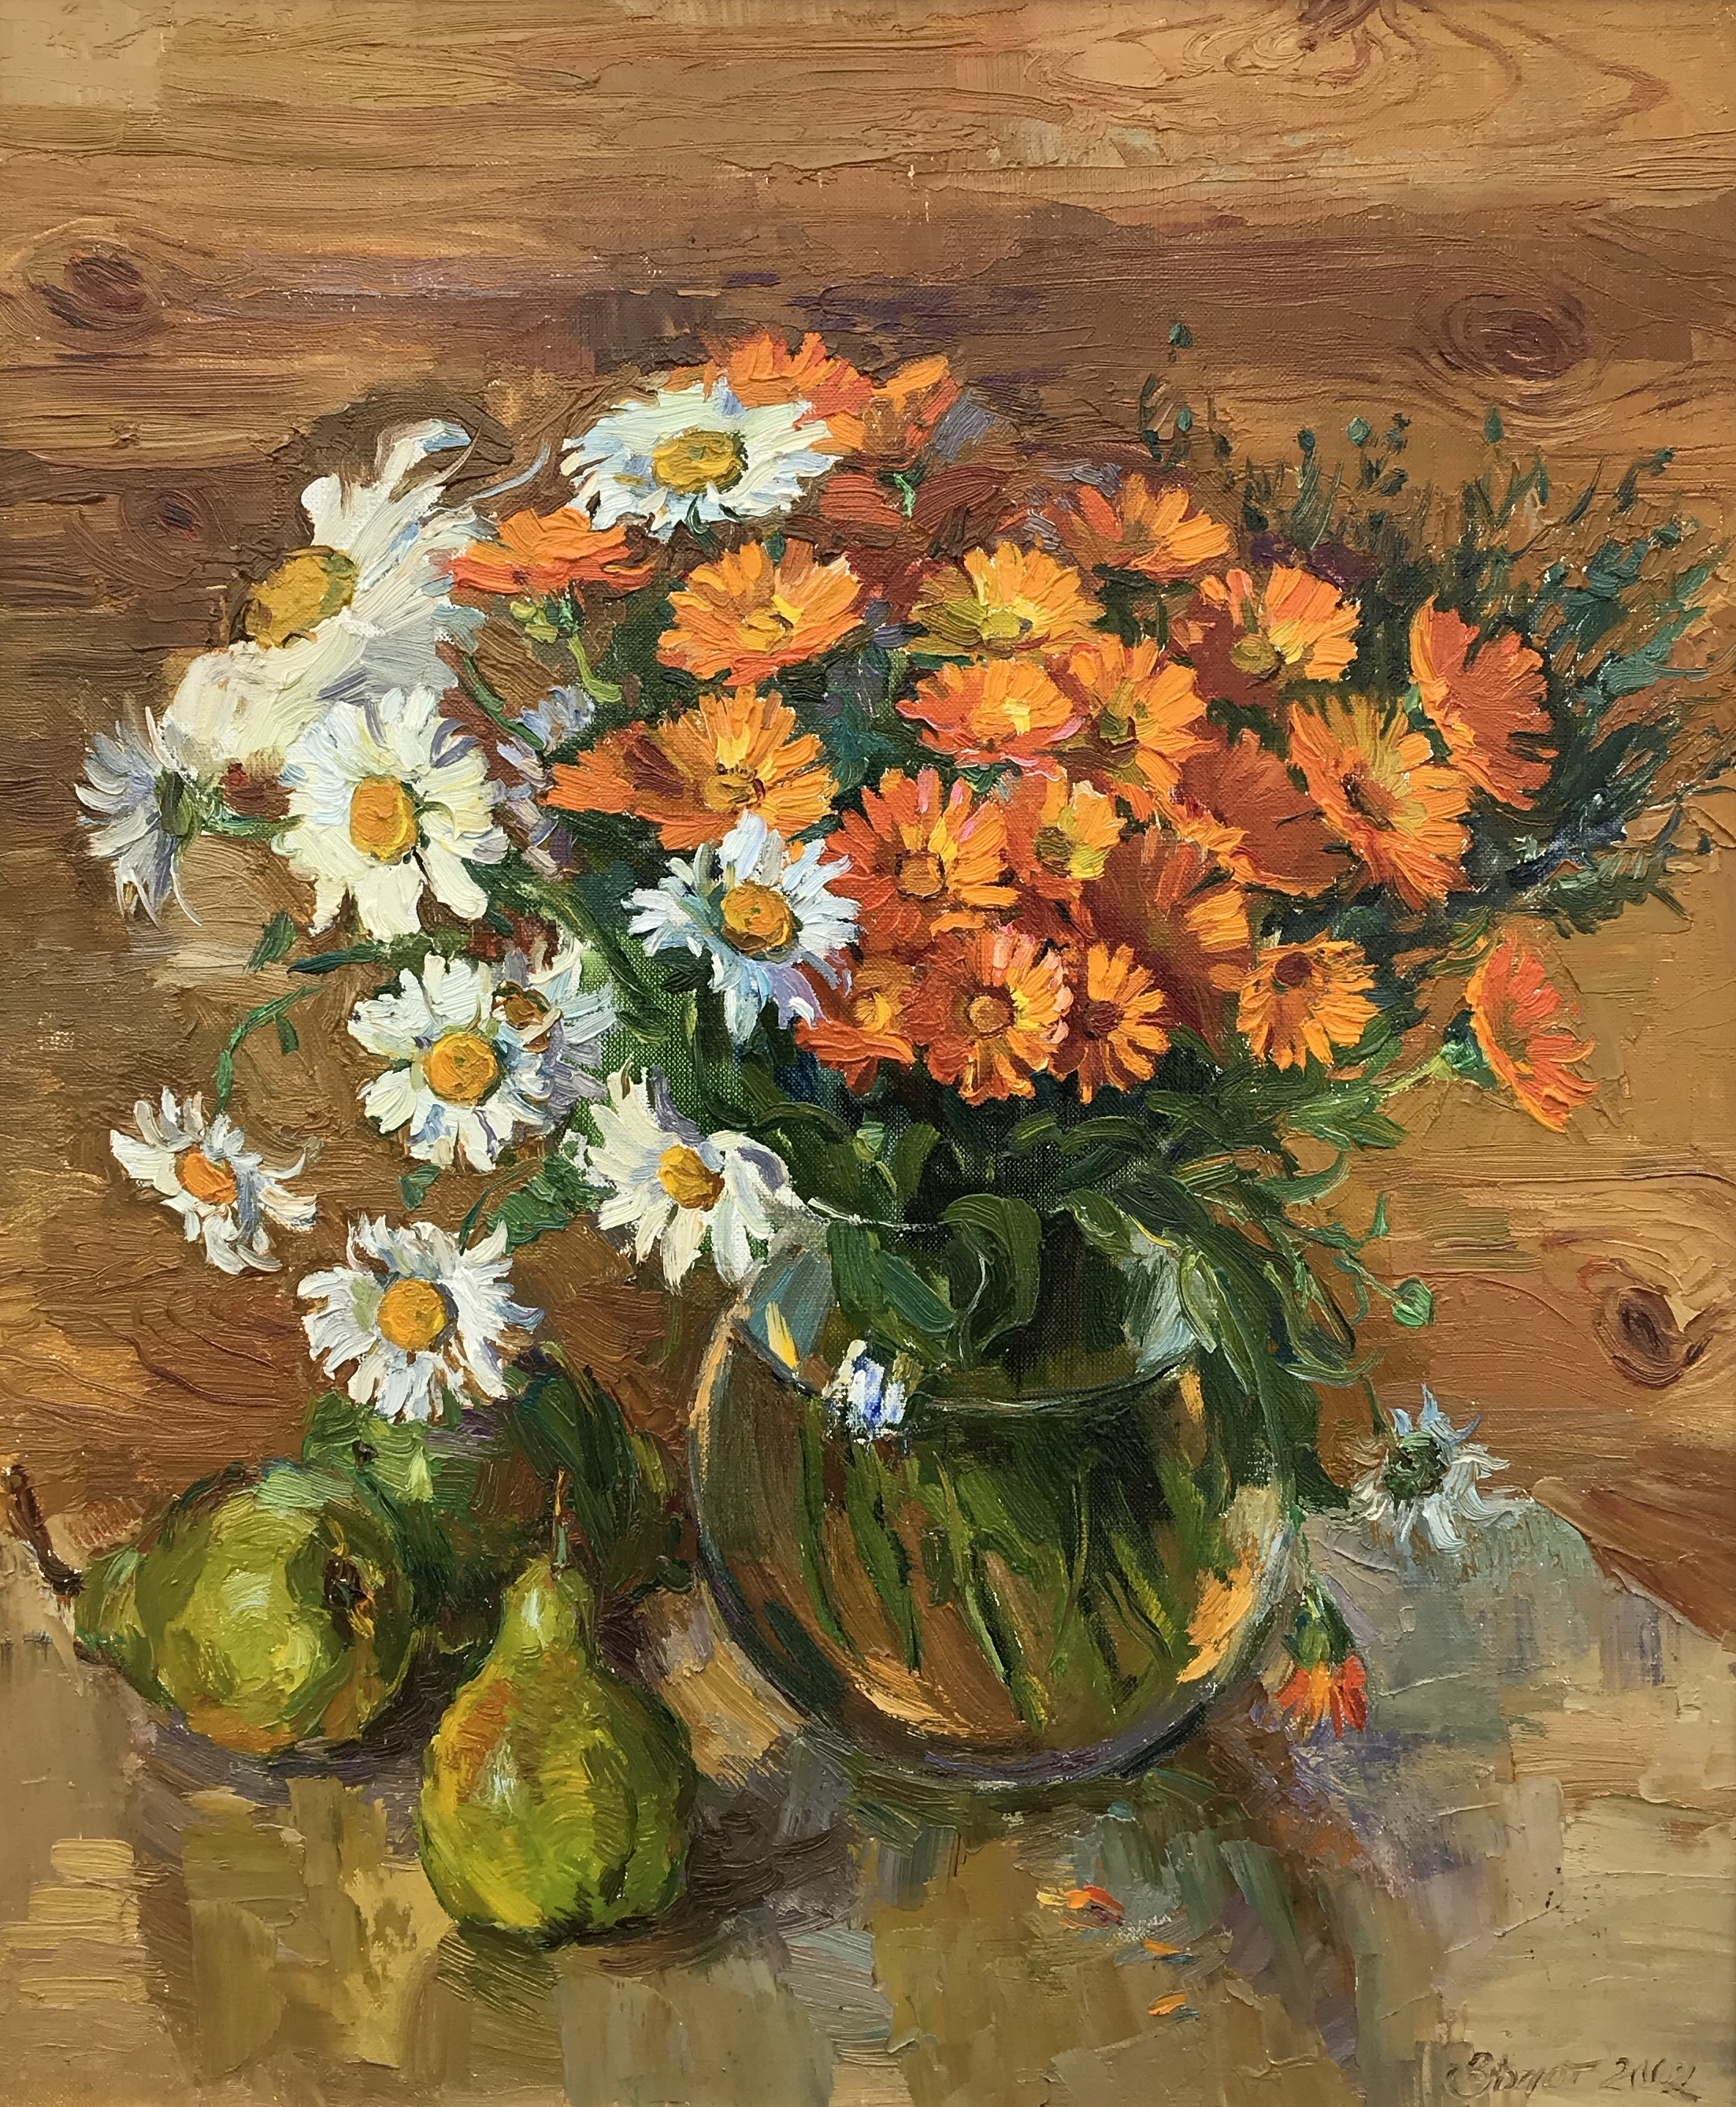 Daisies and Pears